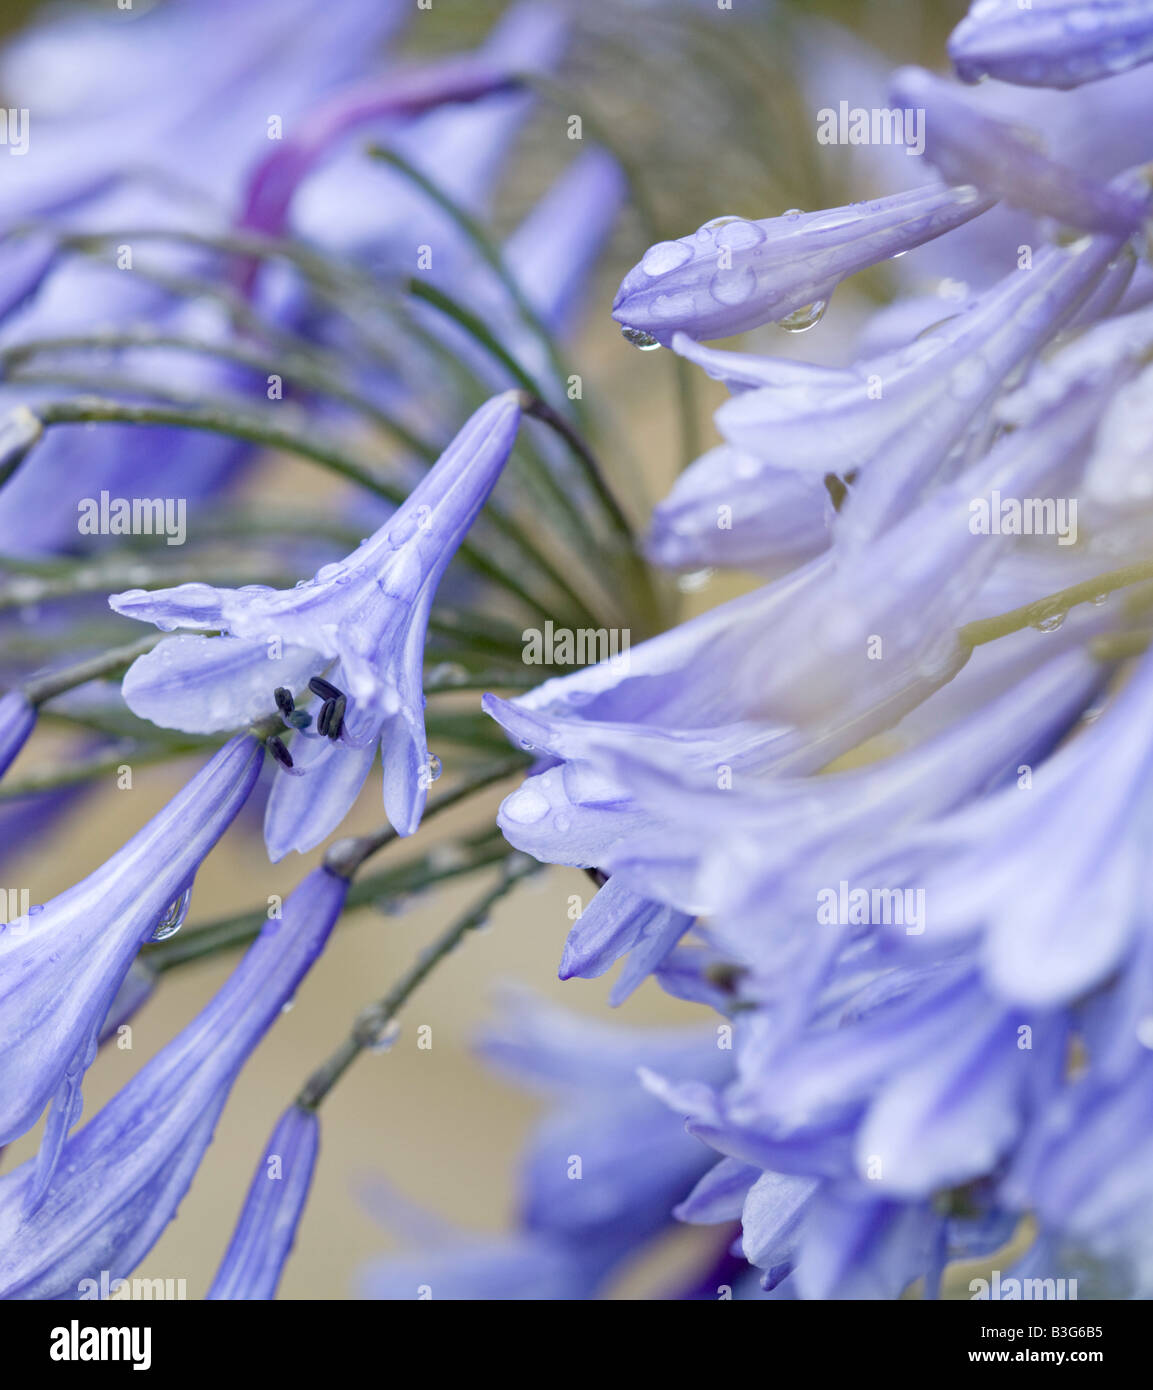 Agapanthus Lily Of The Nile Stock Photo 19410585 Alamy